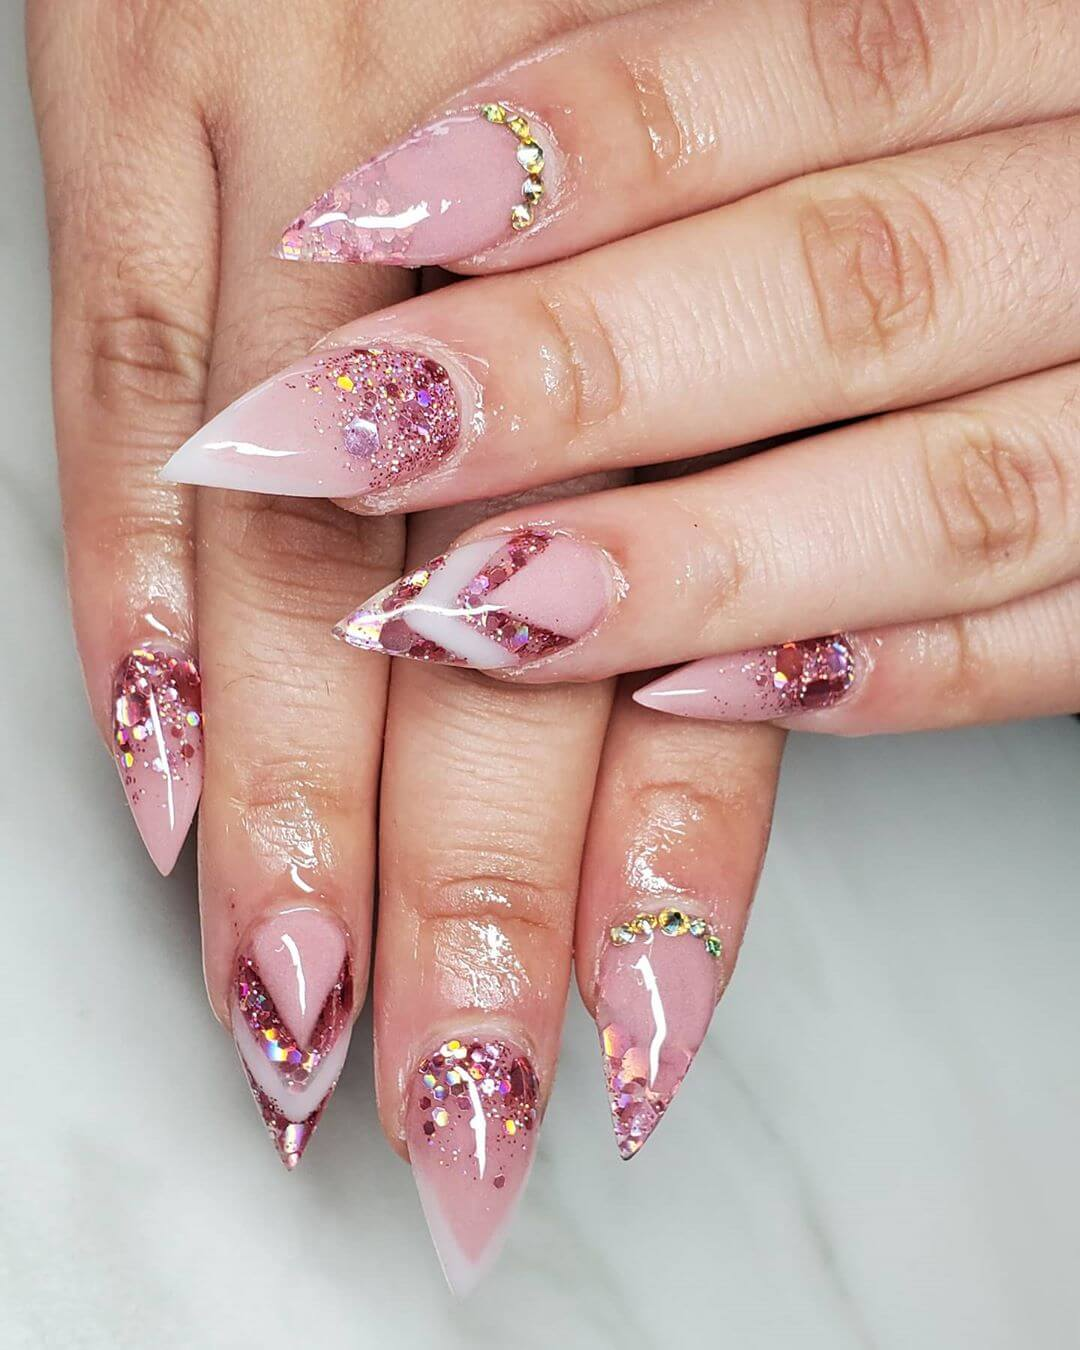 Nails sharper Pink Nail Art Designs with glitter